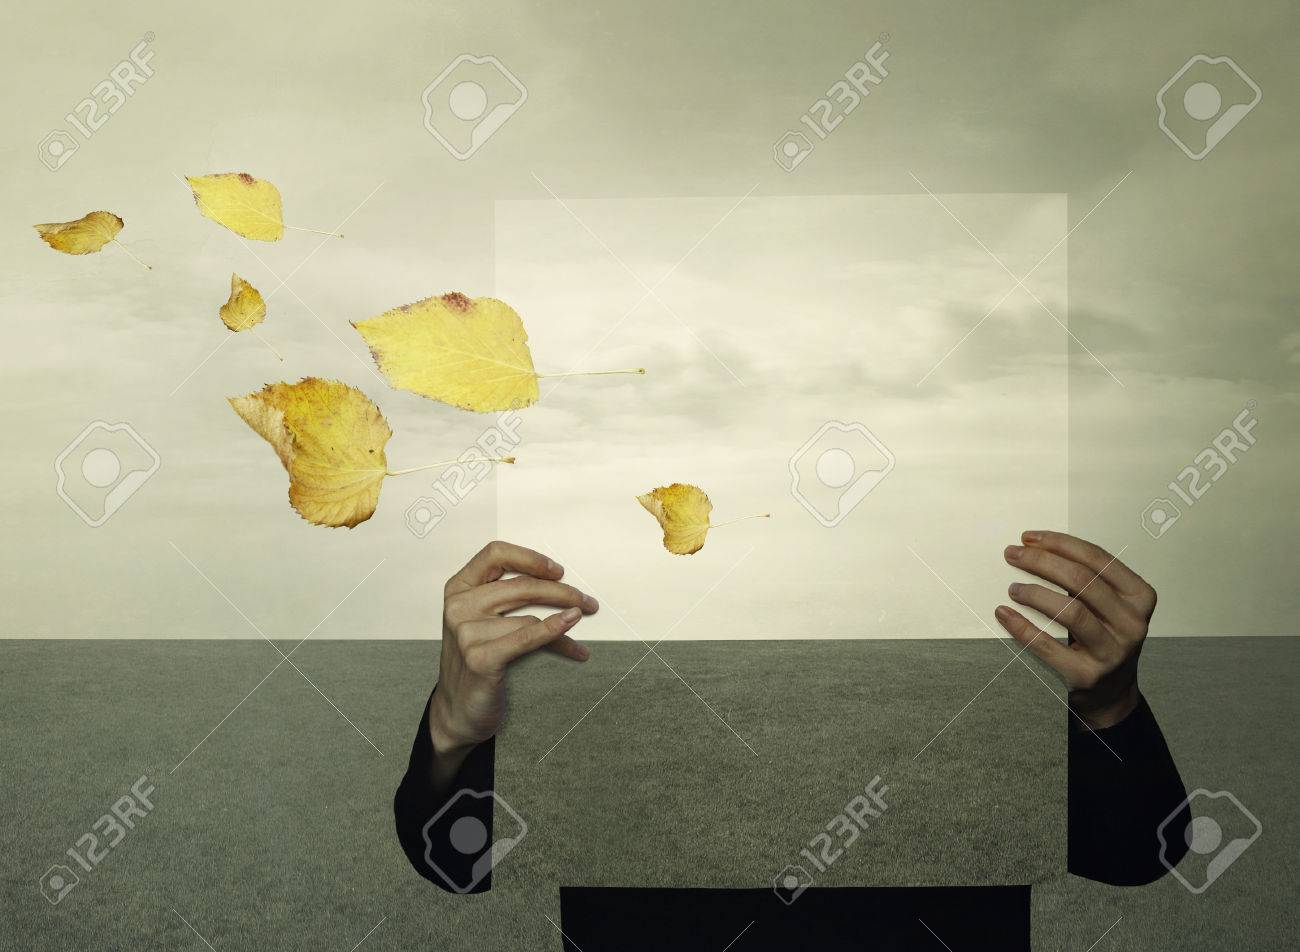 Surreal landscape with a person who holds a framework with the same landscape in the background like an optical effect and leaves in the wind - 27487741